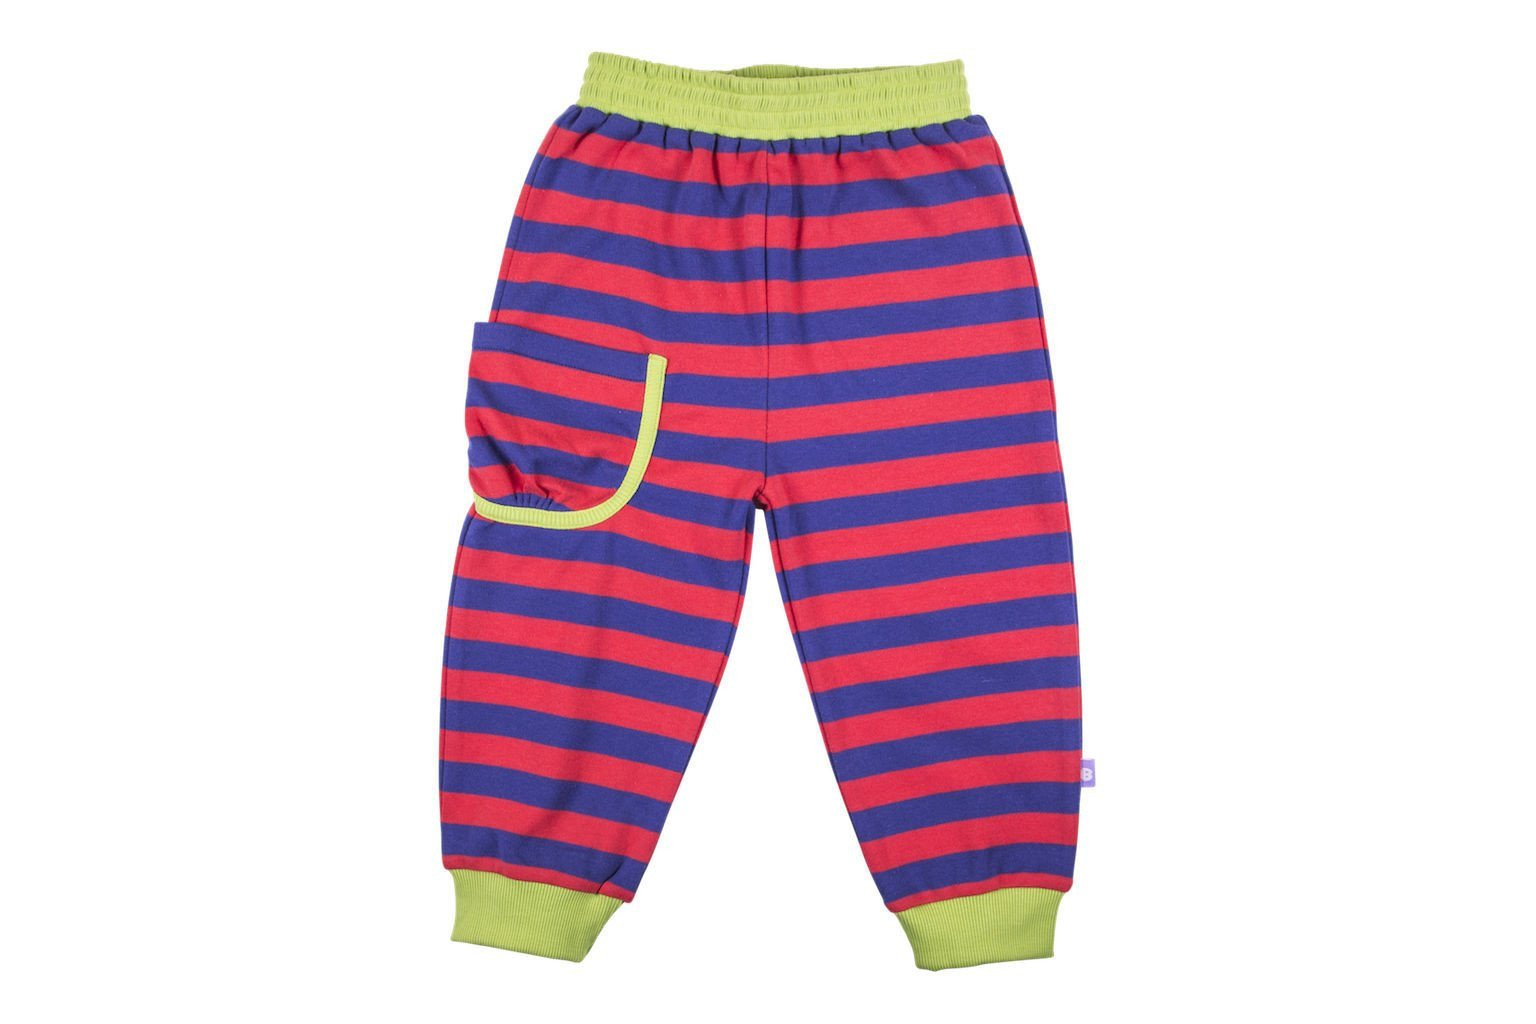 Bright Stripe Pants - HUGABUG